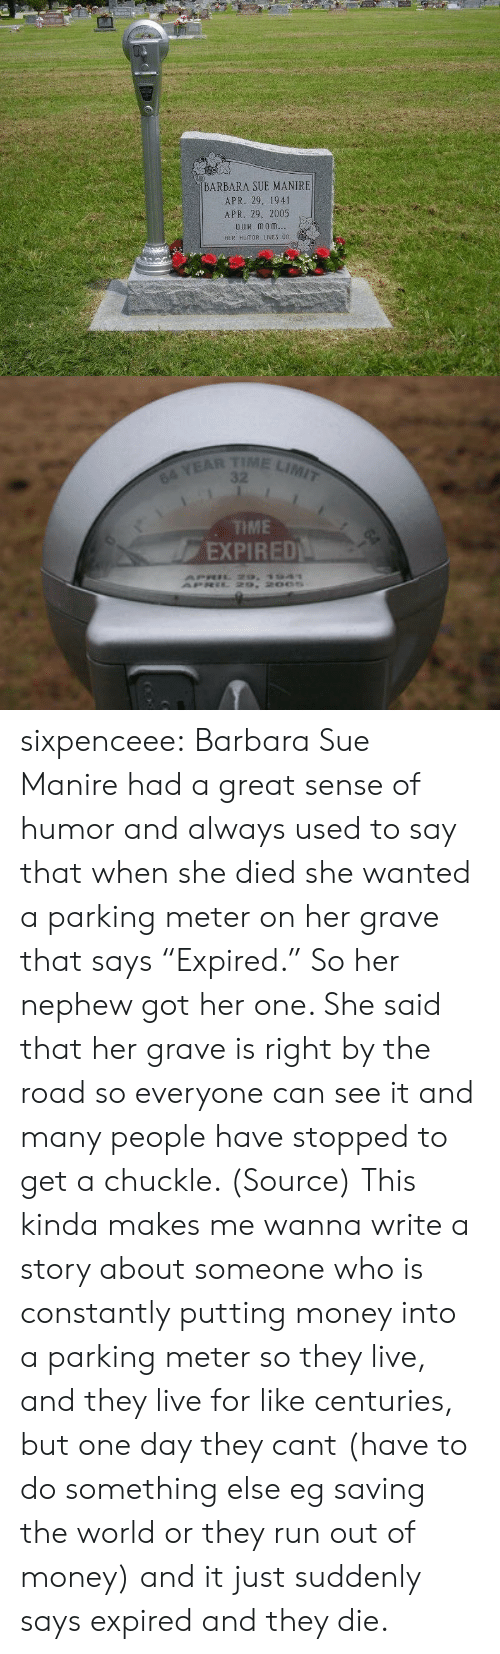 """Money, Run, and Target: BARBARA SUE MANIRE  APR. 29. 1941  APR. 29, 2005  OuR monm  HER HUMOR IES 0n   TIME LIMIT  64 YEAR  TME  EXPIRED sixpenceee: Barbara Sue Manirehad a great sense of humor and always used to say that when she died she wanted a parking meter on her grave that says """"Expired."""" So her nephew got her one. She said that her grave is right by the road so everyone can see it and many people have stopped to get a chuckle. (Source)   This kinda makes me wanna write a story about someone who is constantly putting money into a parking meter so they live, and they live for like centuries, but one day they cant (have to do something else eg saving the world or they run out of money) and it just suddenly says expired and they die."""